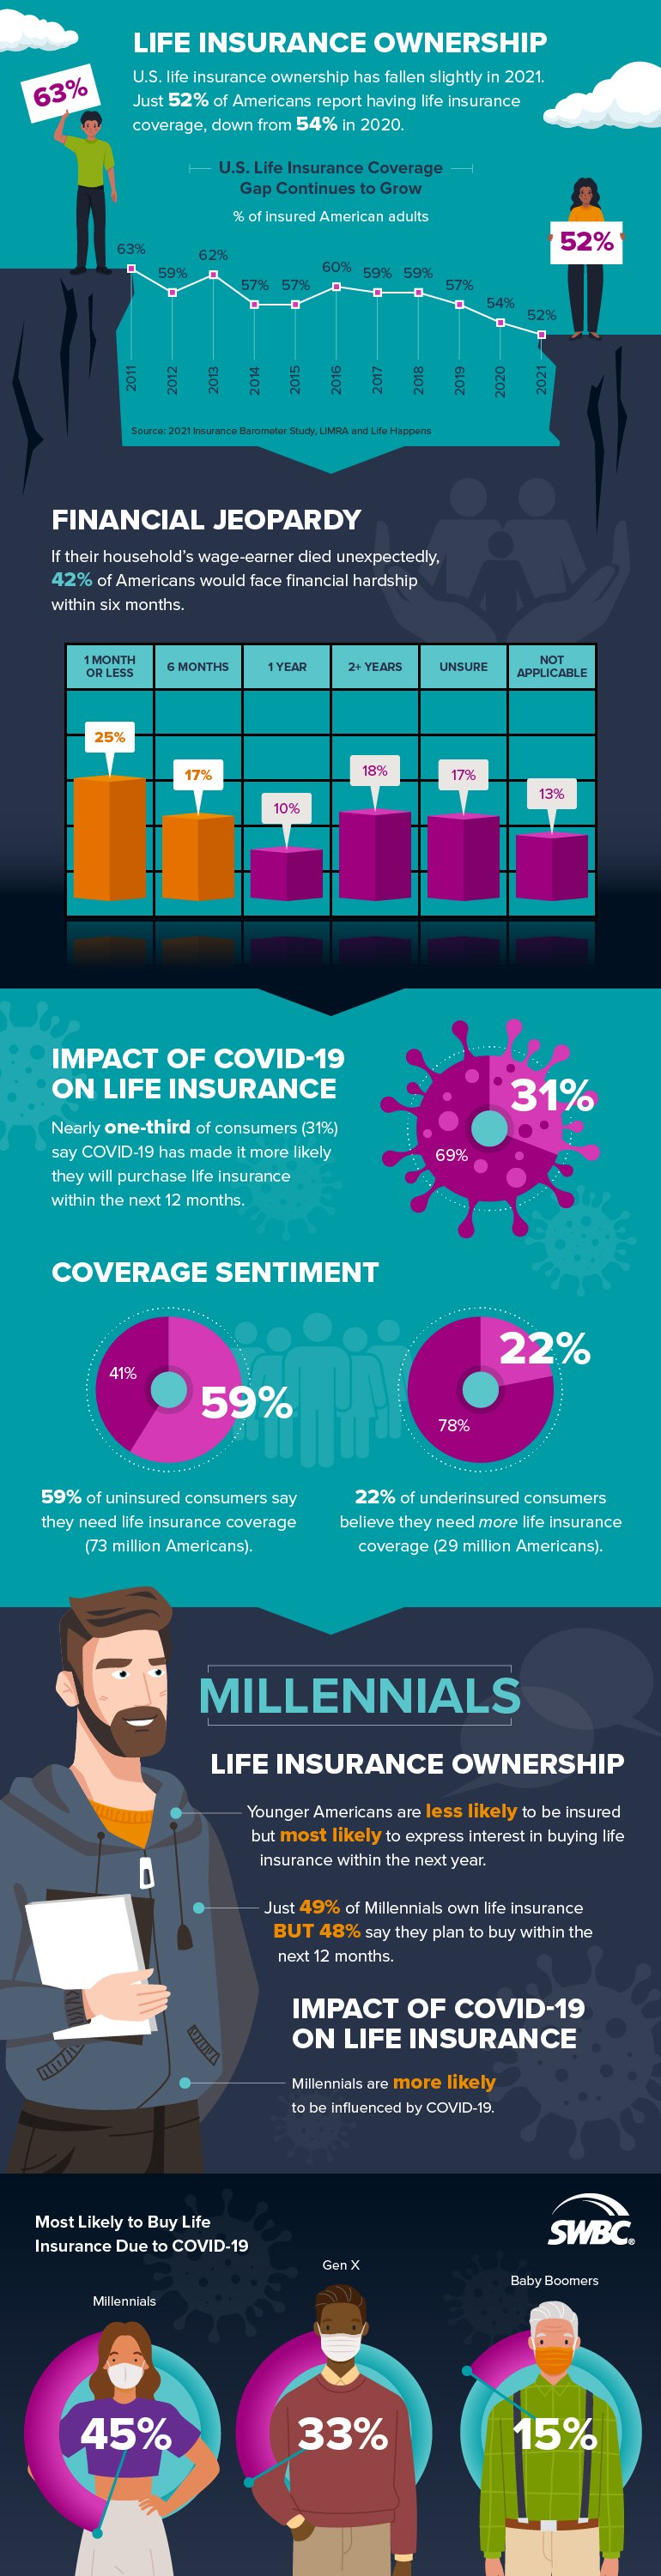 the-impact-of-covid19-on-life-insurance-adoption-PROOF